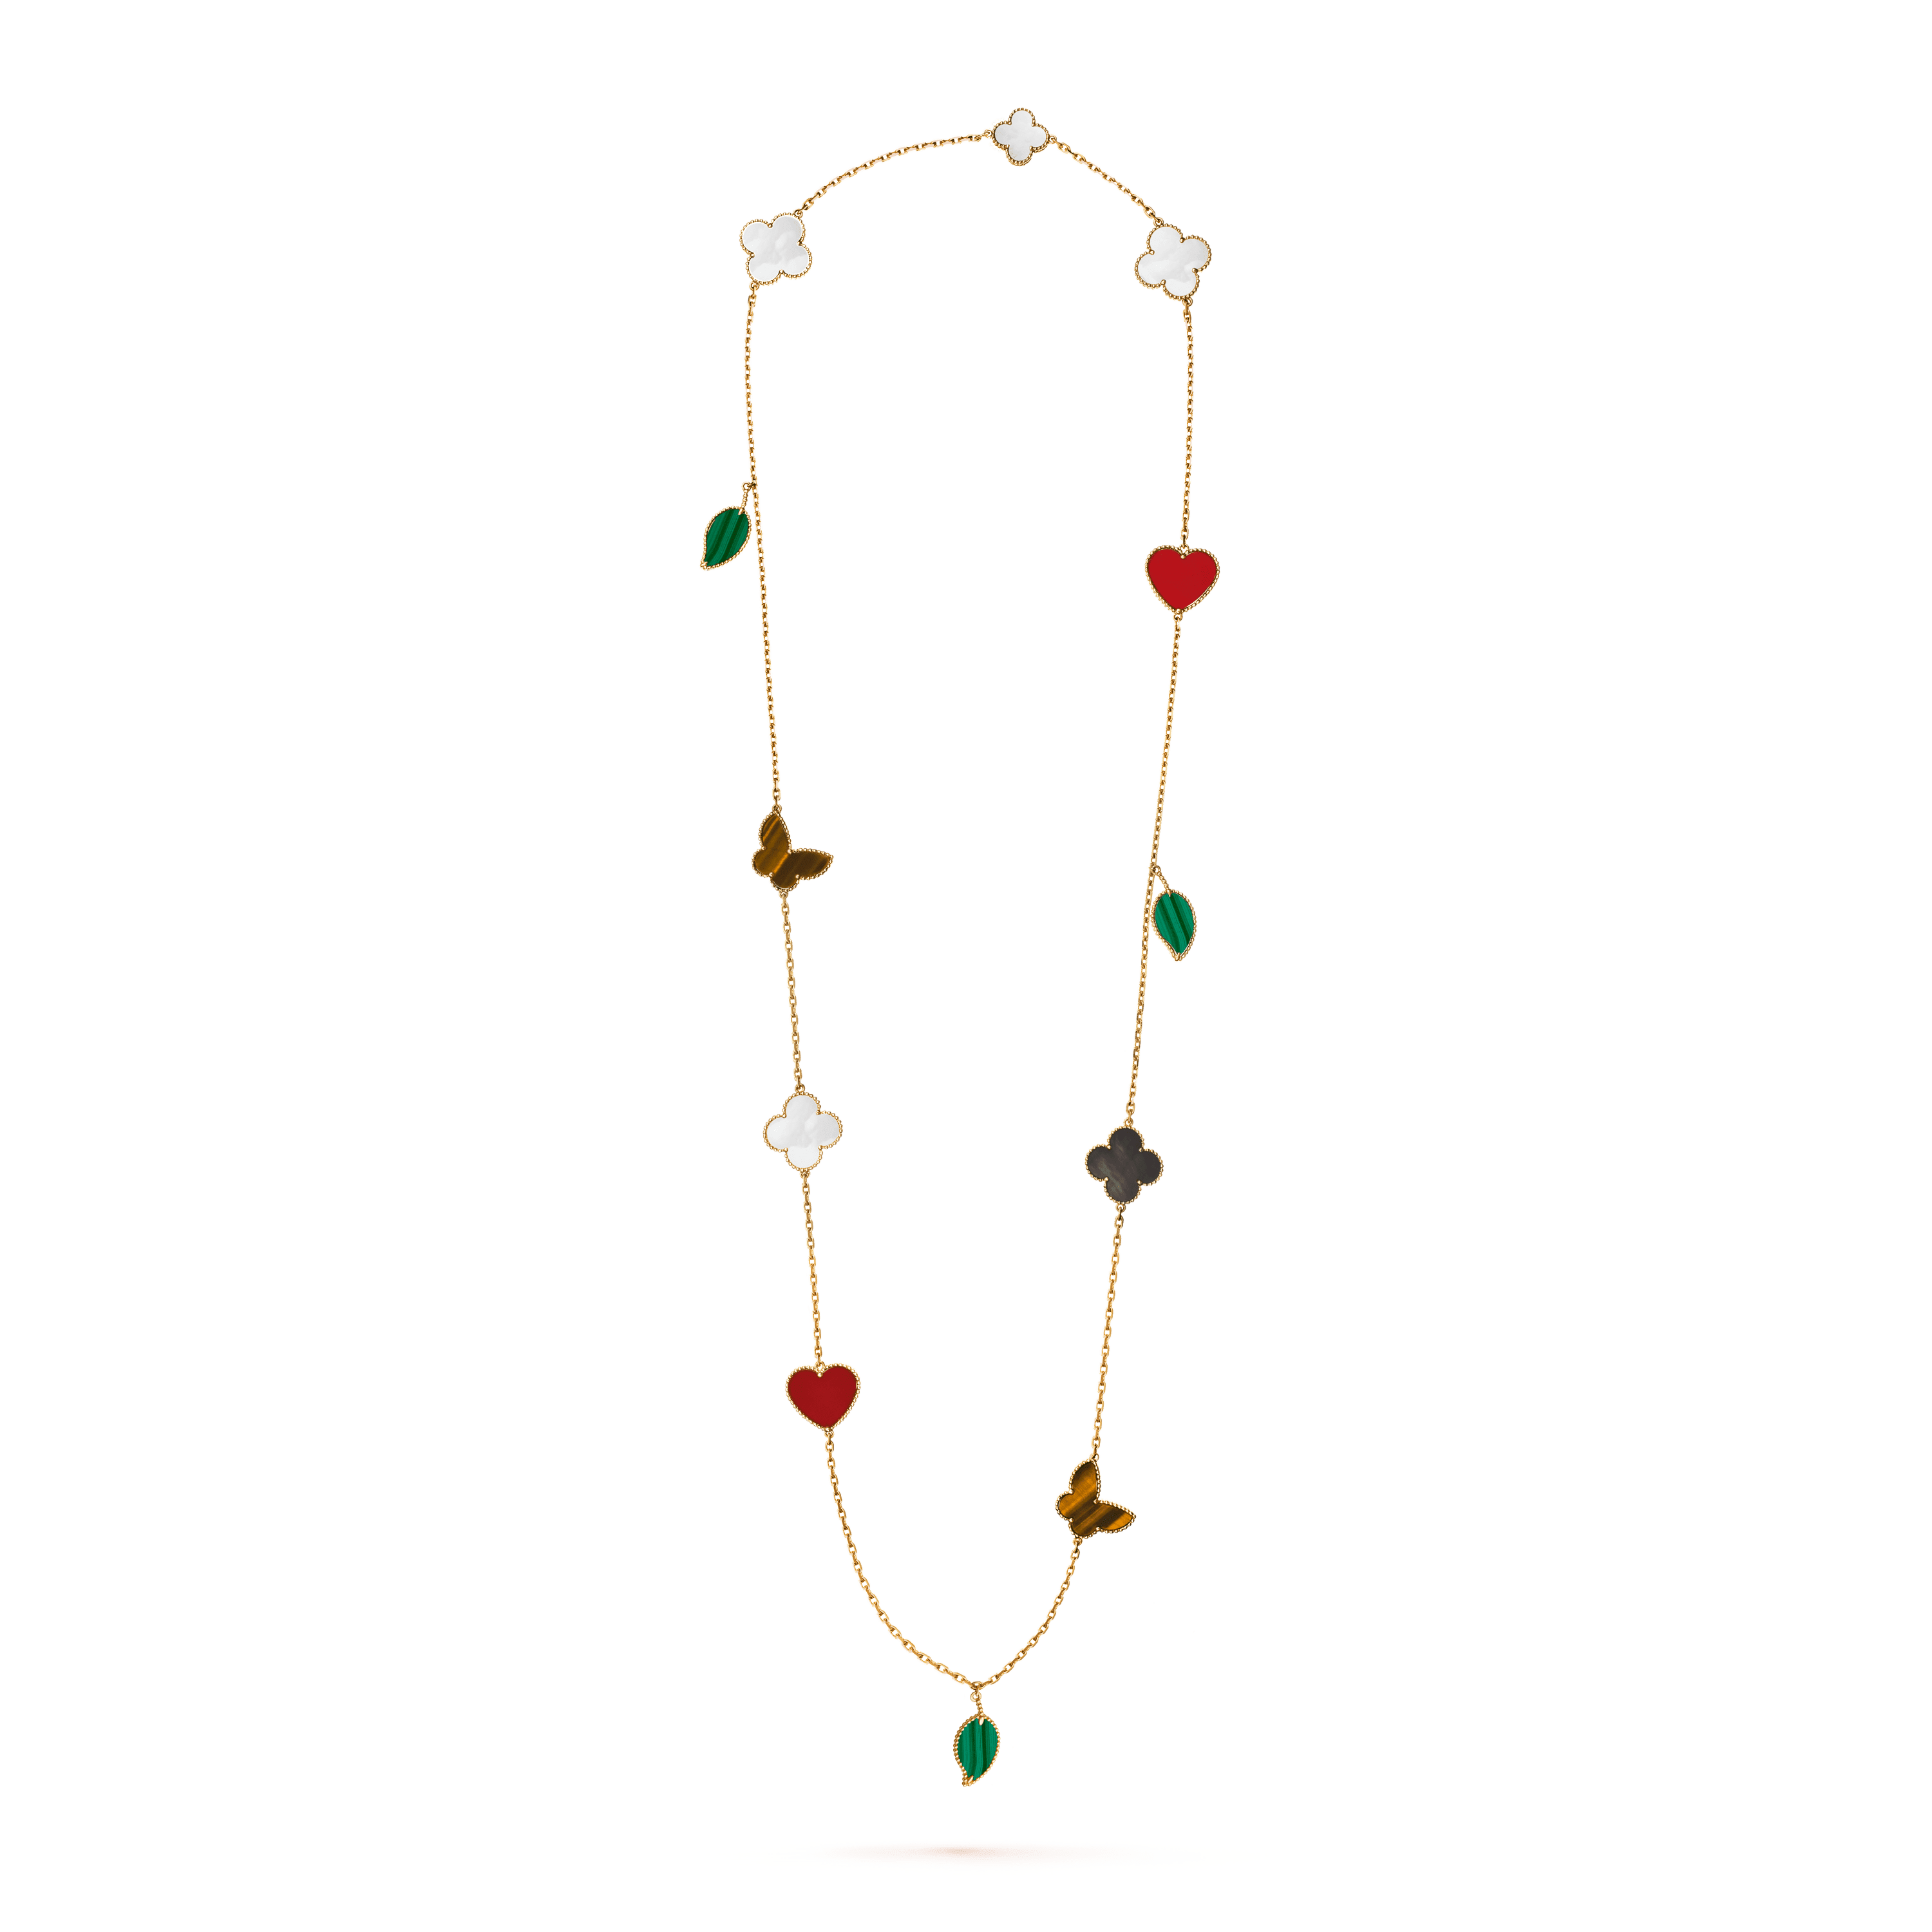 Lucky Alhambra long necklace, 12 motifs, - On Stand View - VCARD80100 - Van Cleef & Arpels